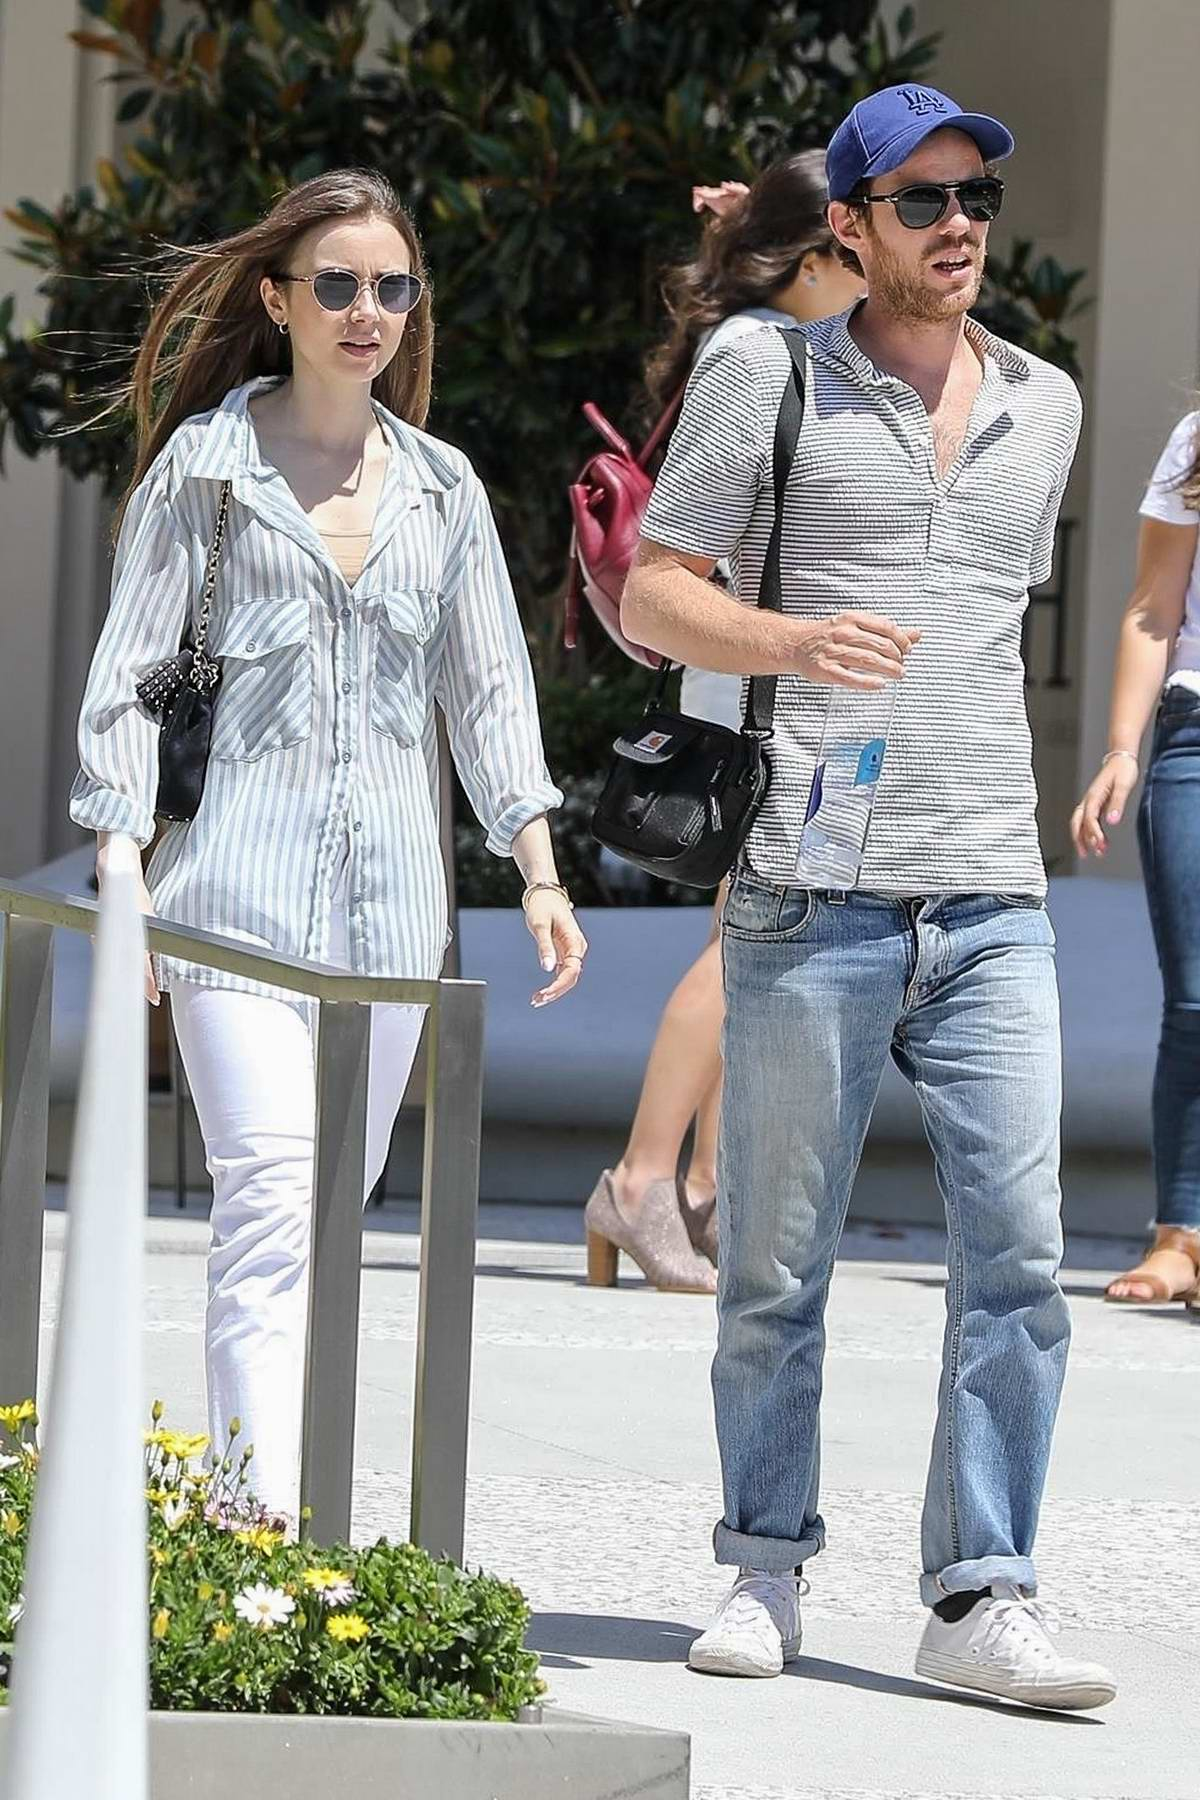 Lily Collins dressed casual while she grabs lunch with a friend in Los Angeles